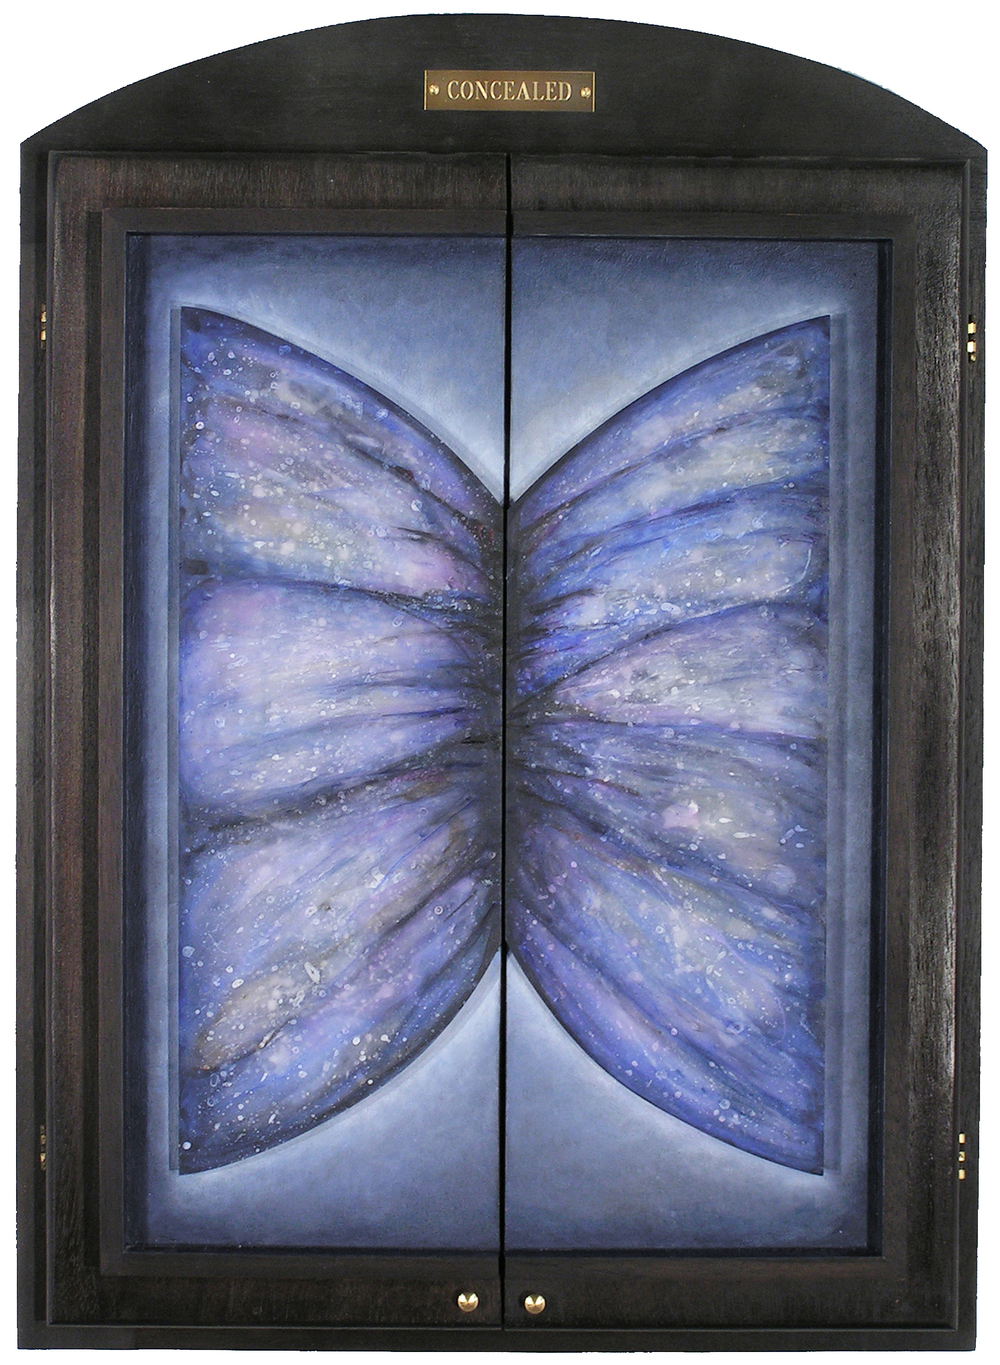 Concealed, Behind Closed Doors Series,  1999  Acrylic and prismacolor on plexi, wood, and velvet 23 x 16 x 2 inches